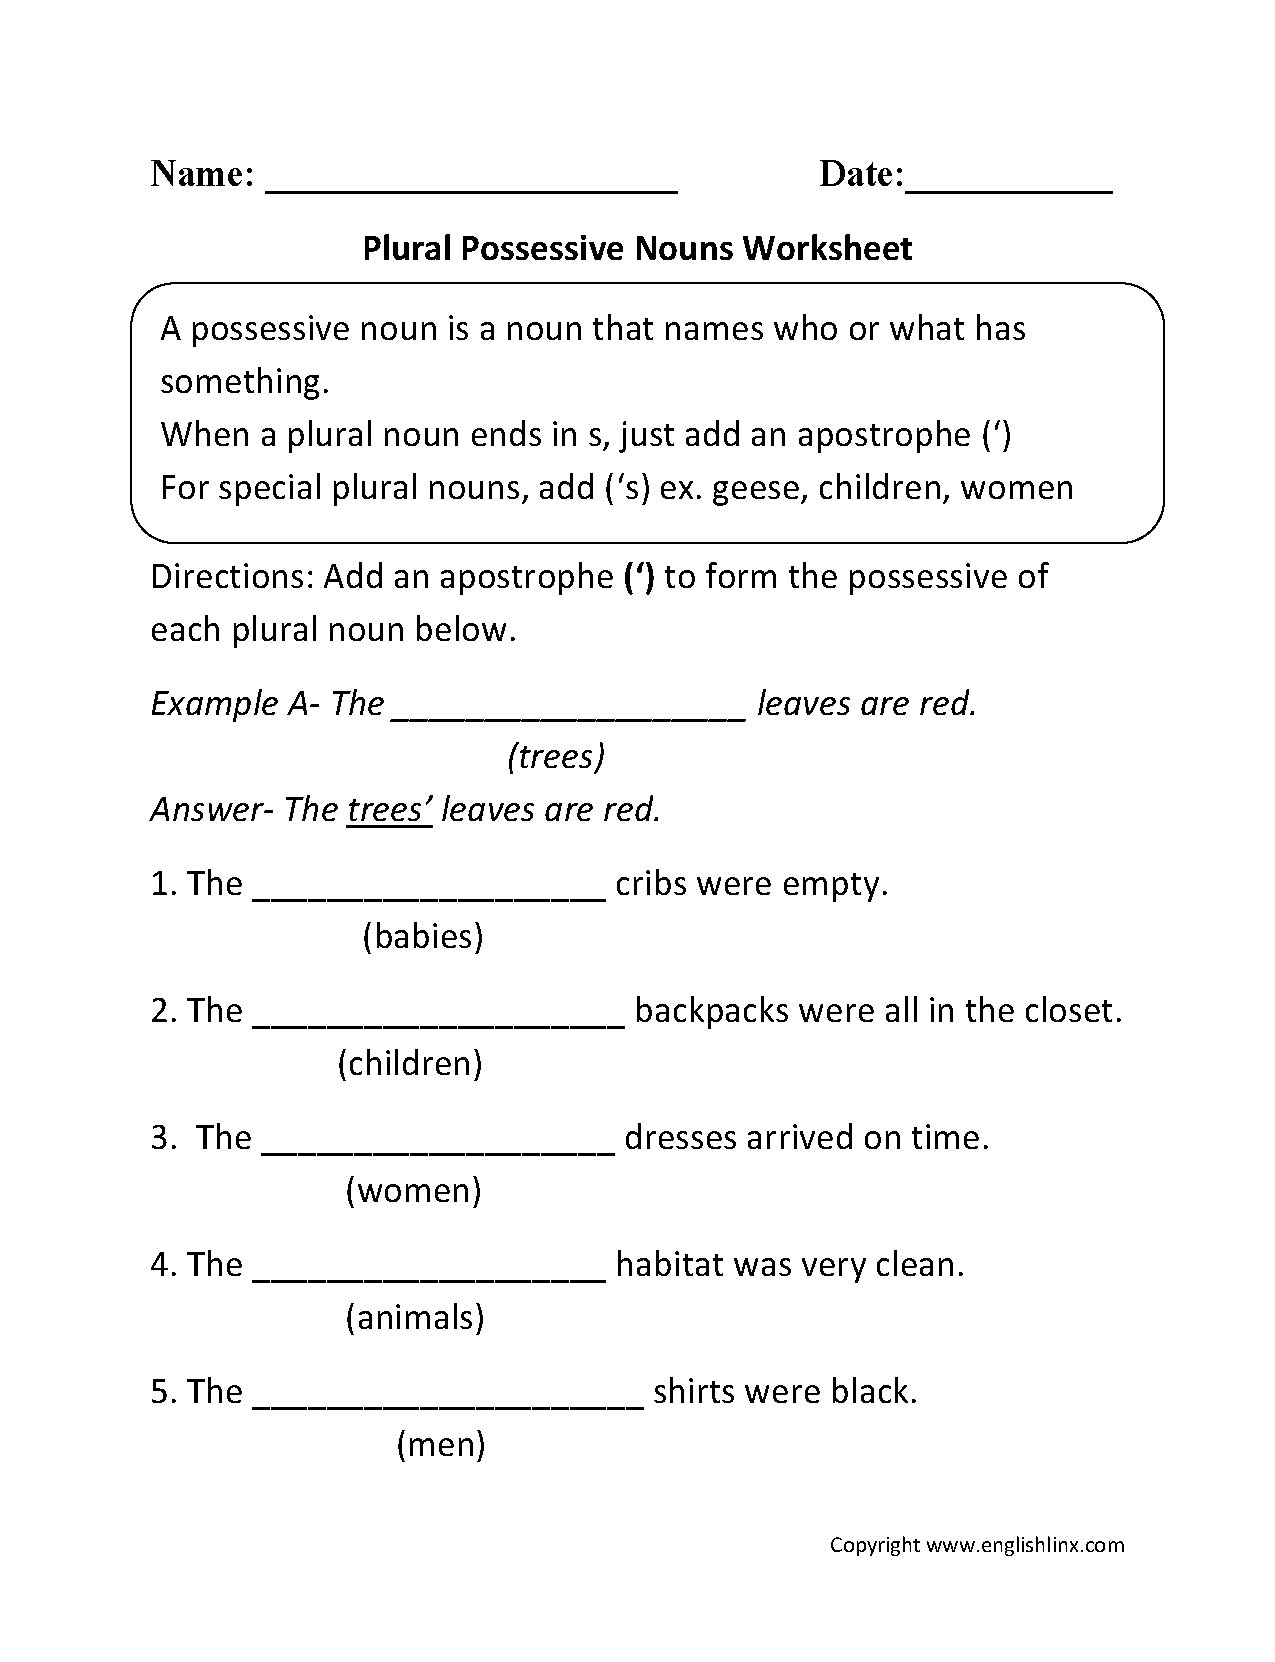 Aldiablosus  Inspiring Nouns Worksheets  Possessive Nouns Worksheets With Lovely Possessive Nouns Worksheets With Charming Writing Practice Worksheets For Kids Also Counting In S Worksheet In Addition Task Worksheet Template And Worksheets Pythagorean Theorem As Well As Pronouns Worksheets Middle School Additionally Punctuation Worksheets Grade  From Englishlinxcom With Aldiablosus  Lovely Nouns Worksheets  Possessive Nouns Worksheets With Charming Possessive Nouns Worksheets And Inspiring Writing Practice Worksheets For Kids Also Counting In S Worksheet In Addition Task Worksheet Template From Englishlinxcom